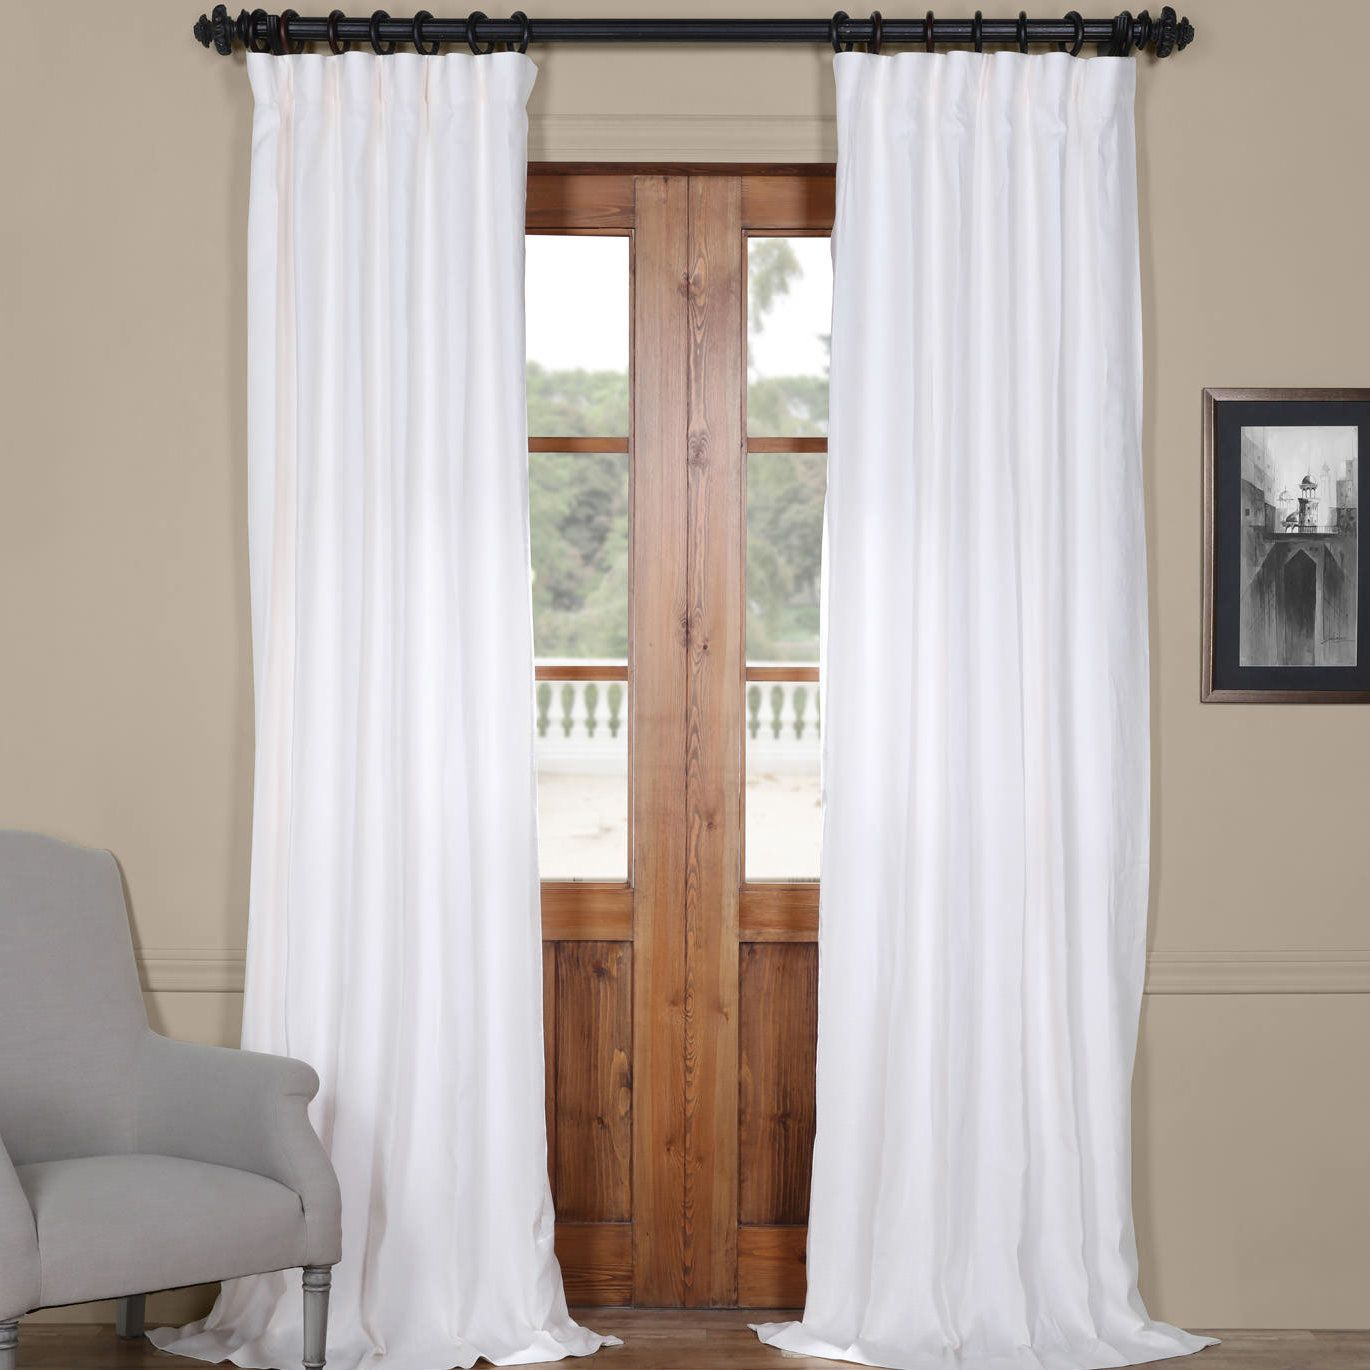 Ennis Linen Rod Pocket Single Curtain Panel | Designed In Regarding Signature White Double Layer Sheer Curtain Panels (View 14 of 30)